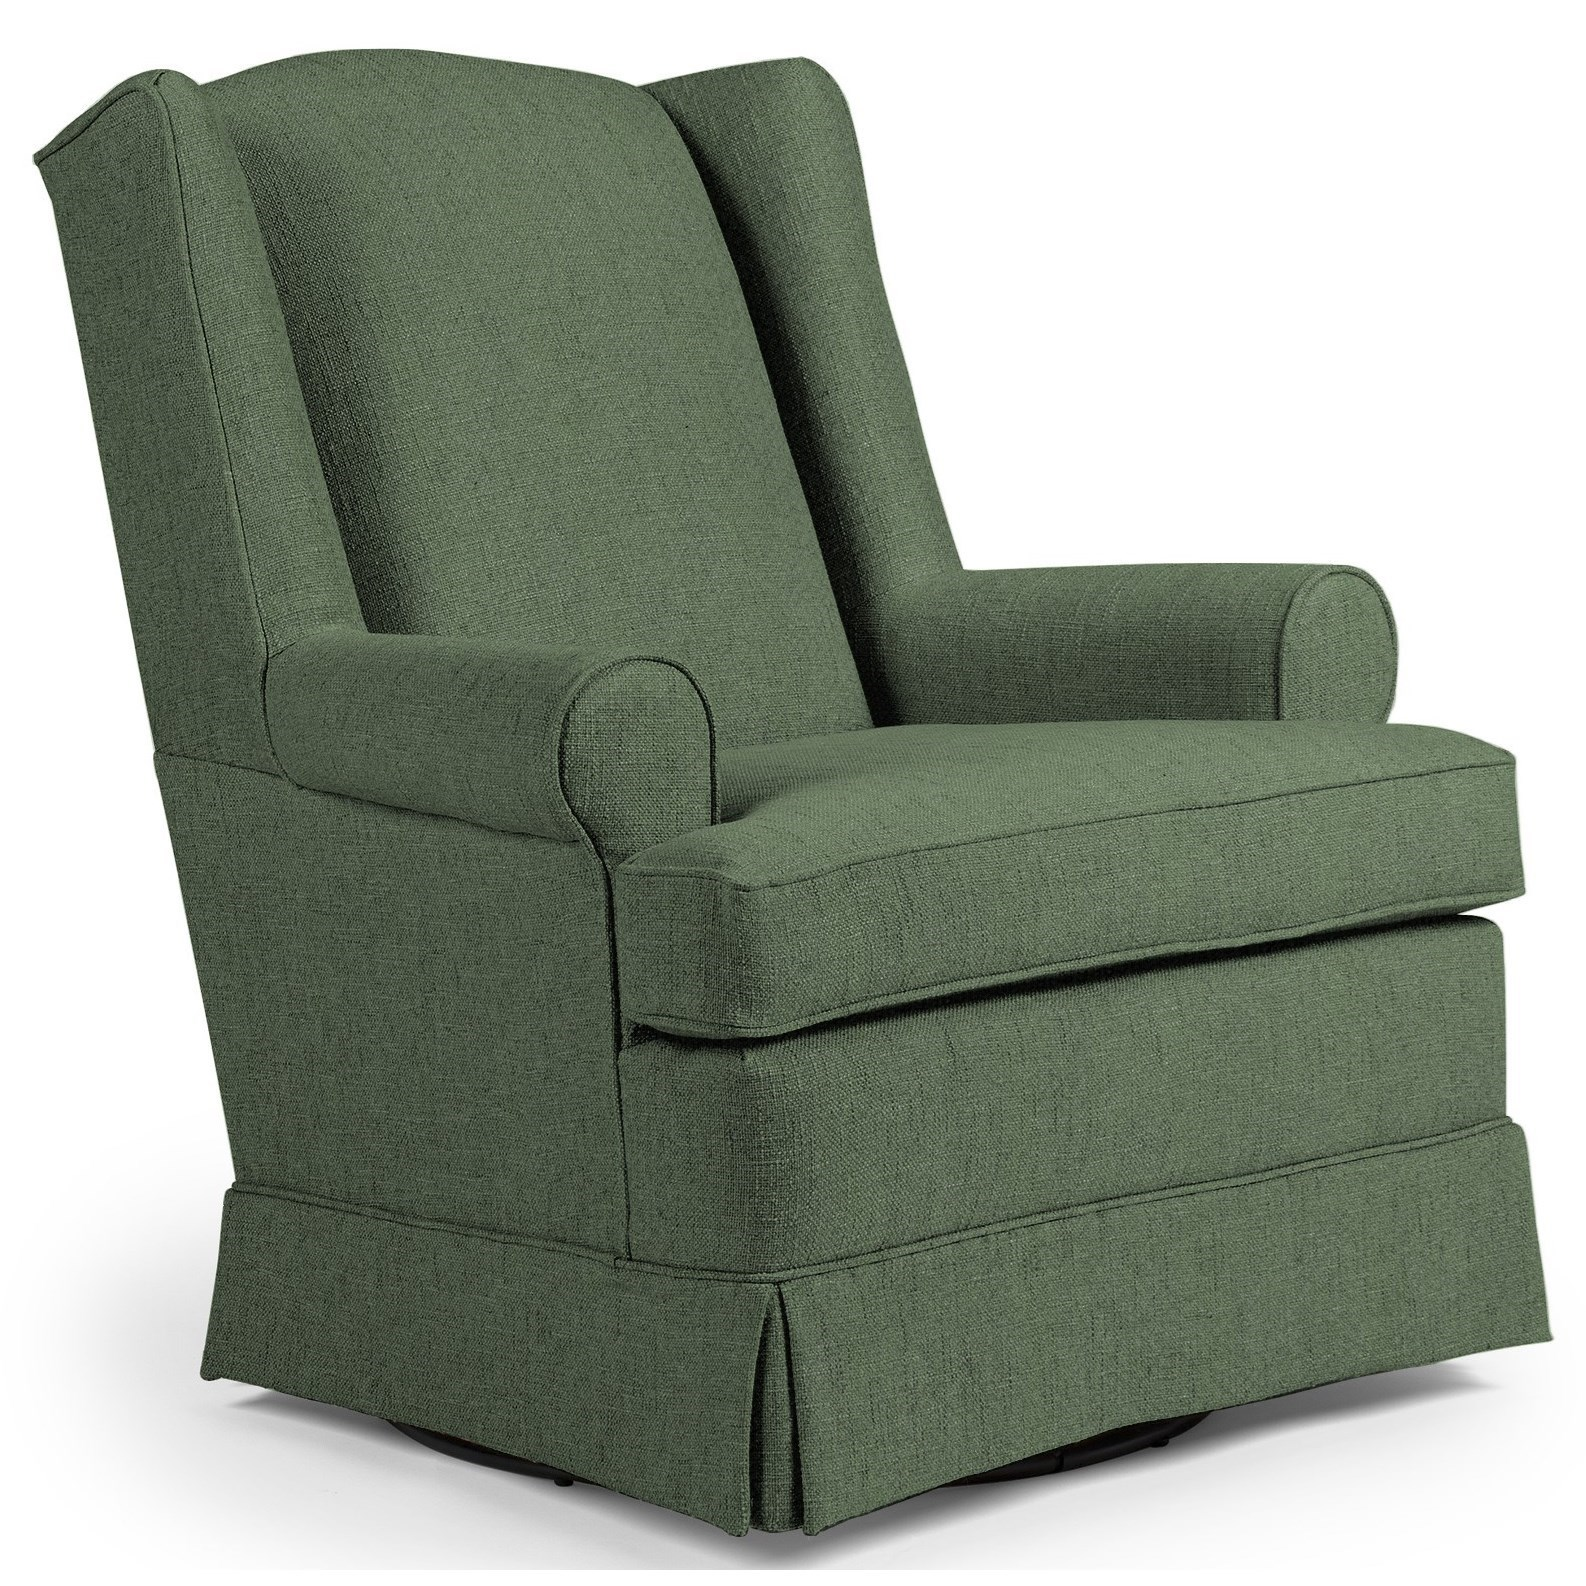 Swivel Glide Chairs Roni Swivel Glider Chair by Best Home Furnishings at Best Home Furnishings